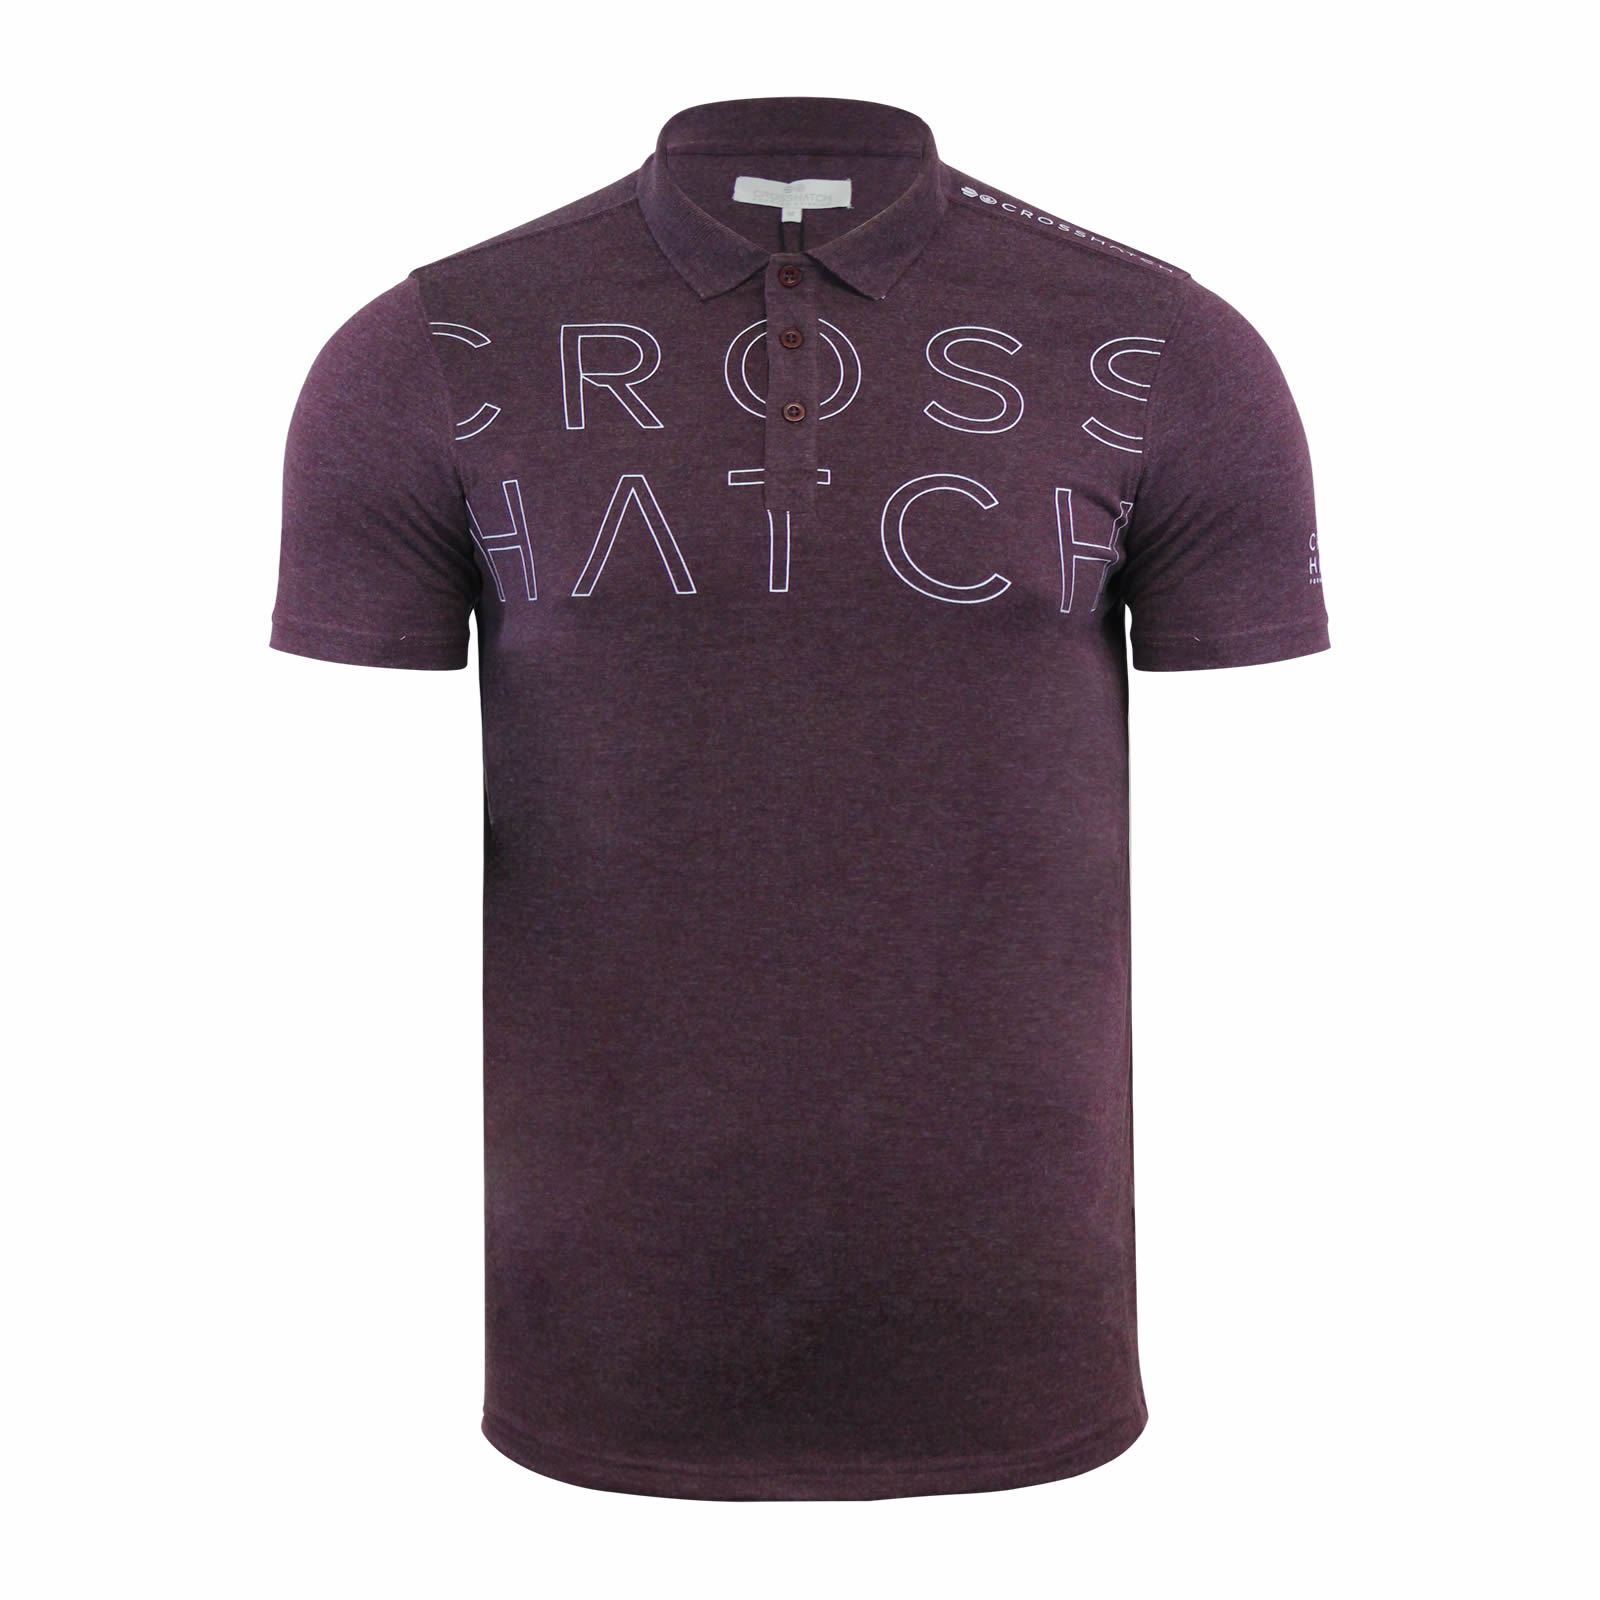 Crosshatch-Mens-Polo-T-Shirt-Pique-Polo-Cotton-Collared-Short-Sleeve-T-Shirt thumbnail 48